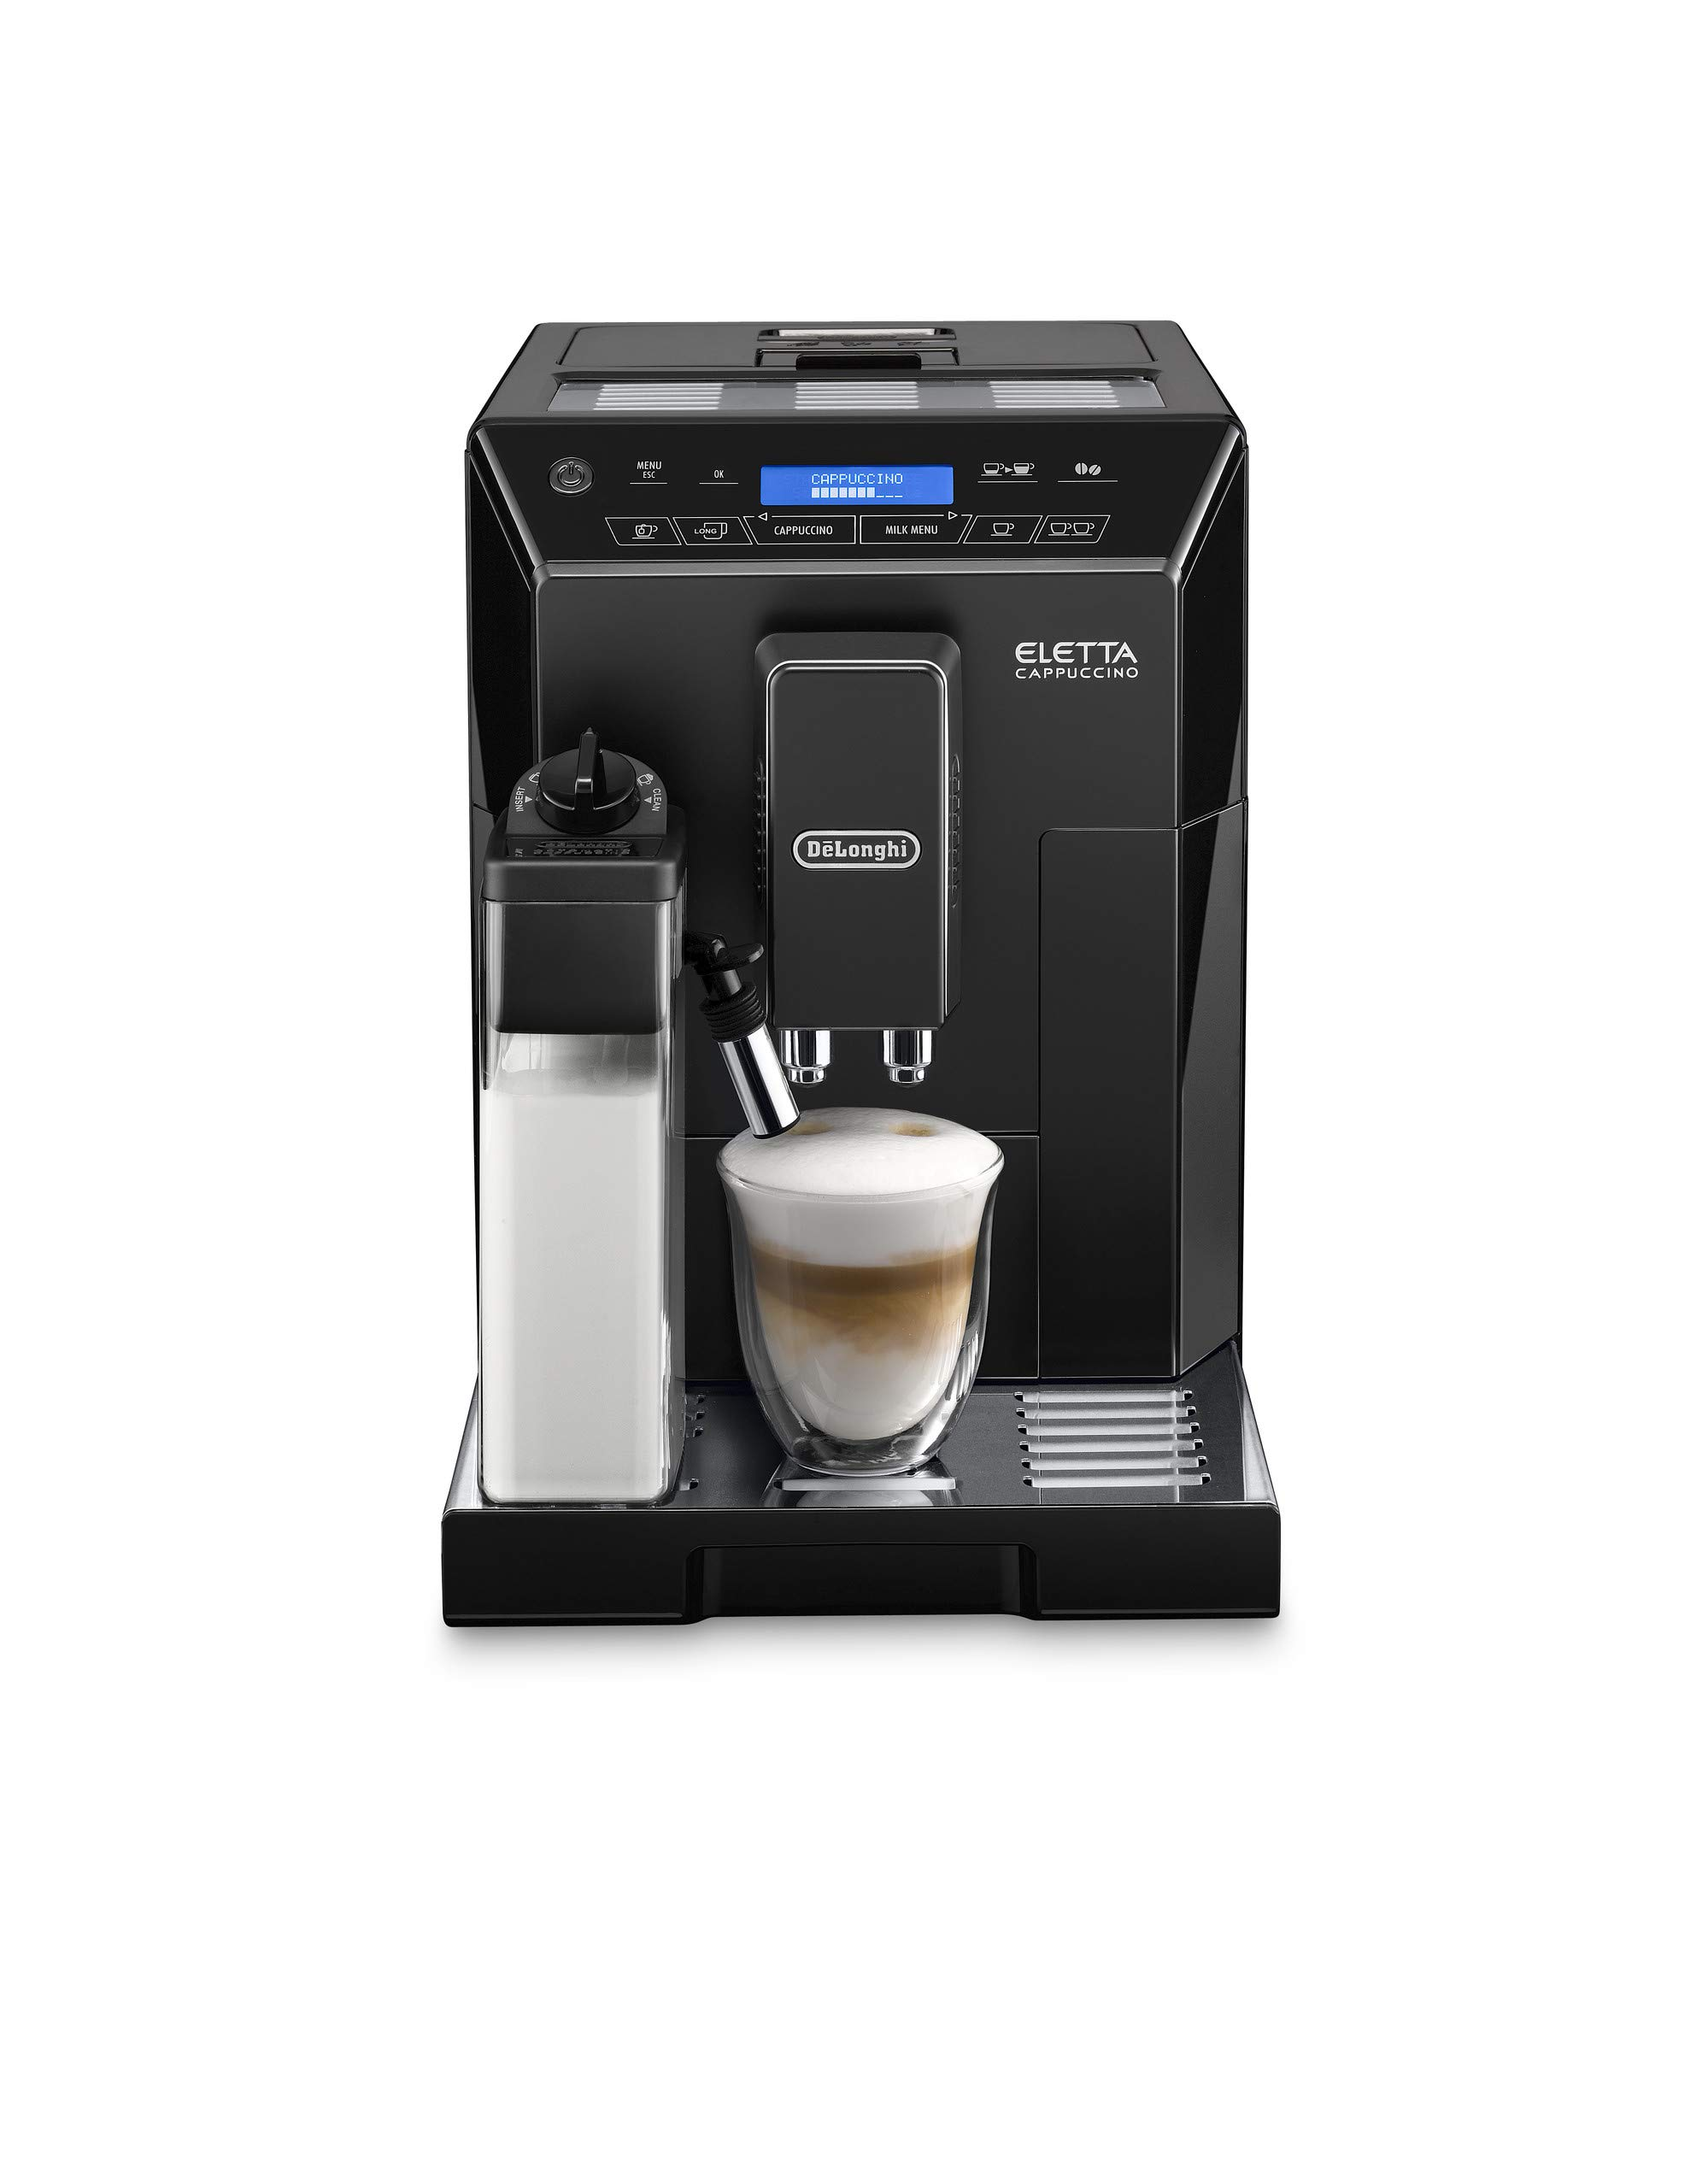 DeLonghi-ECAM44620S-ECAM-44620S-Bean-to-Cup-Stainless-Steel